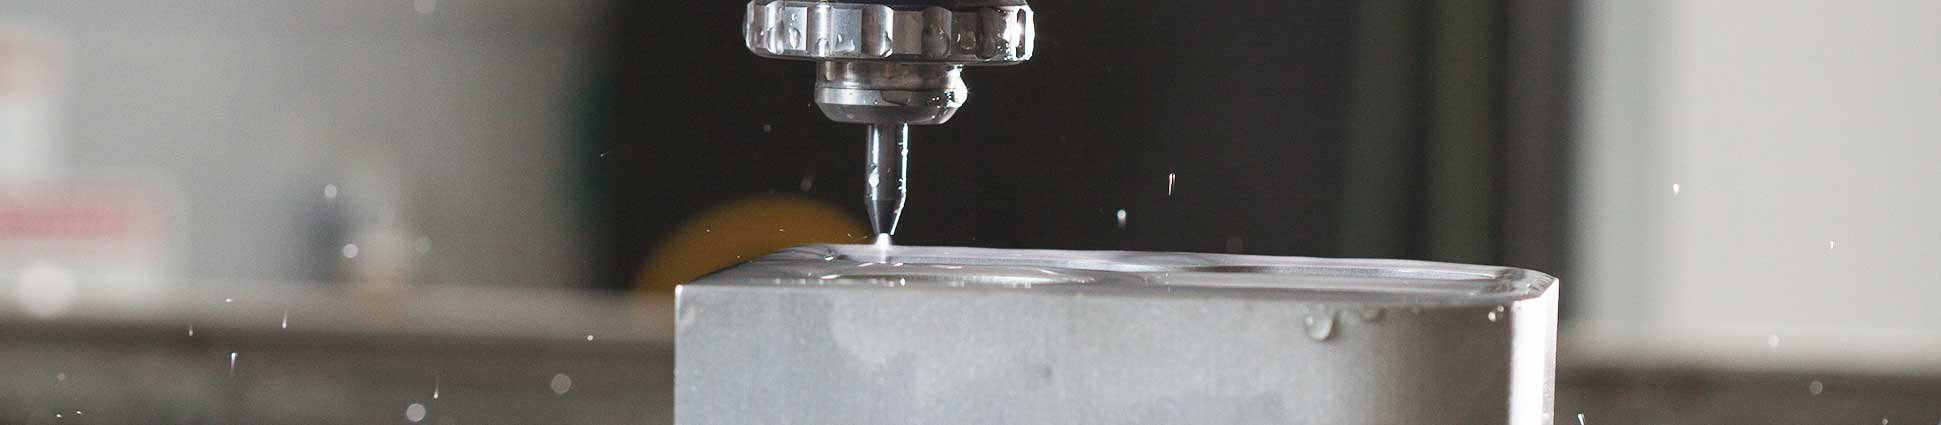 Close up of Flow waterjet cutting thick metal material.